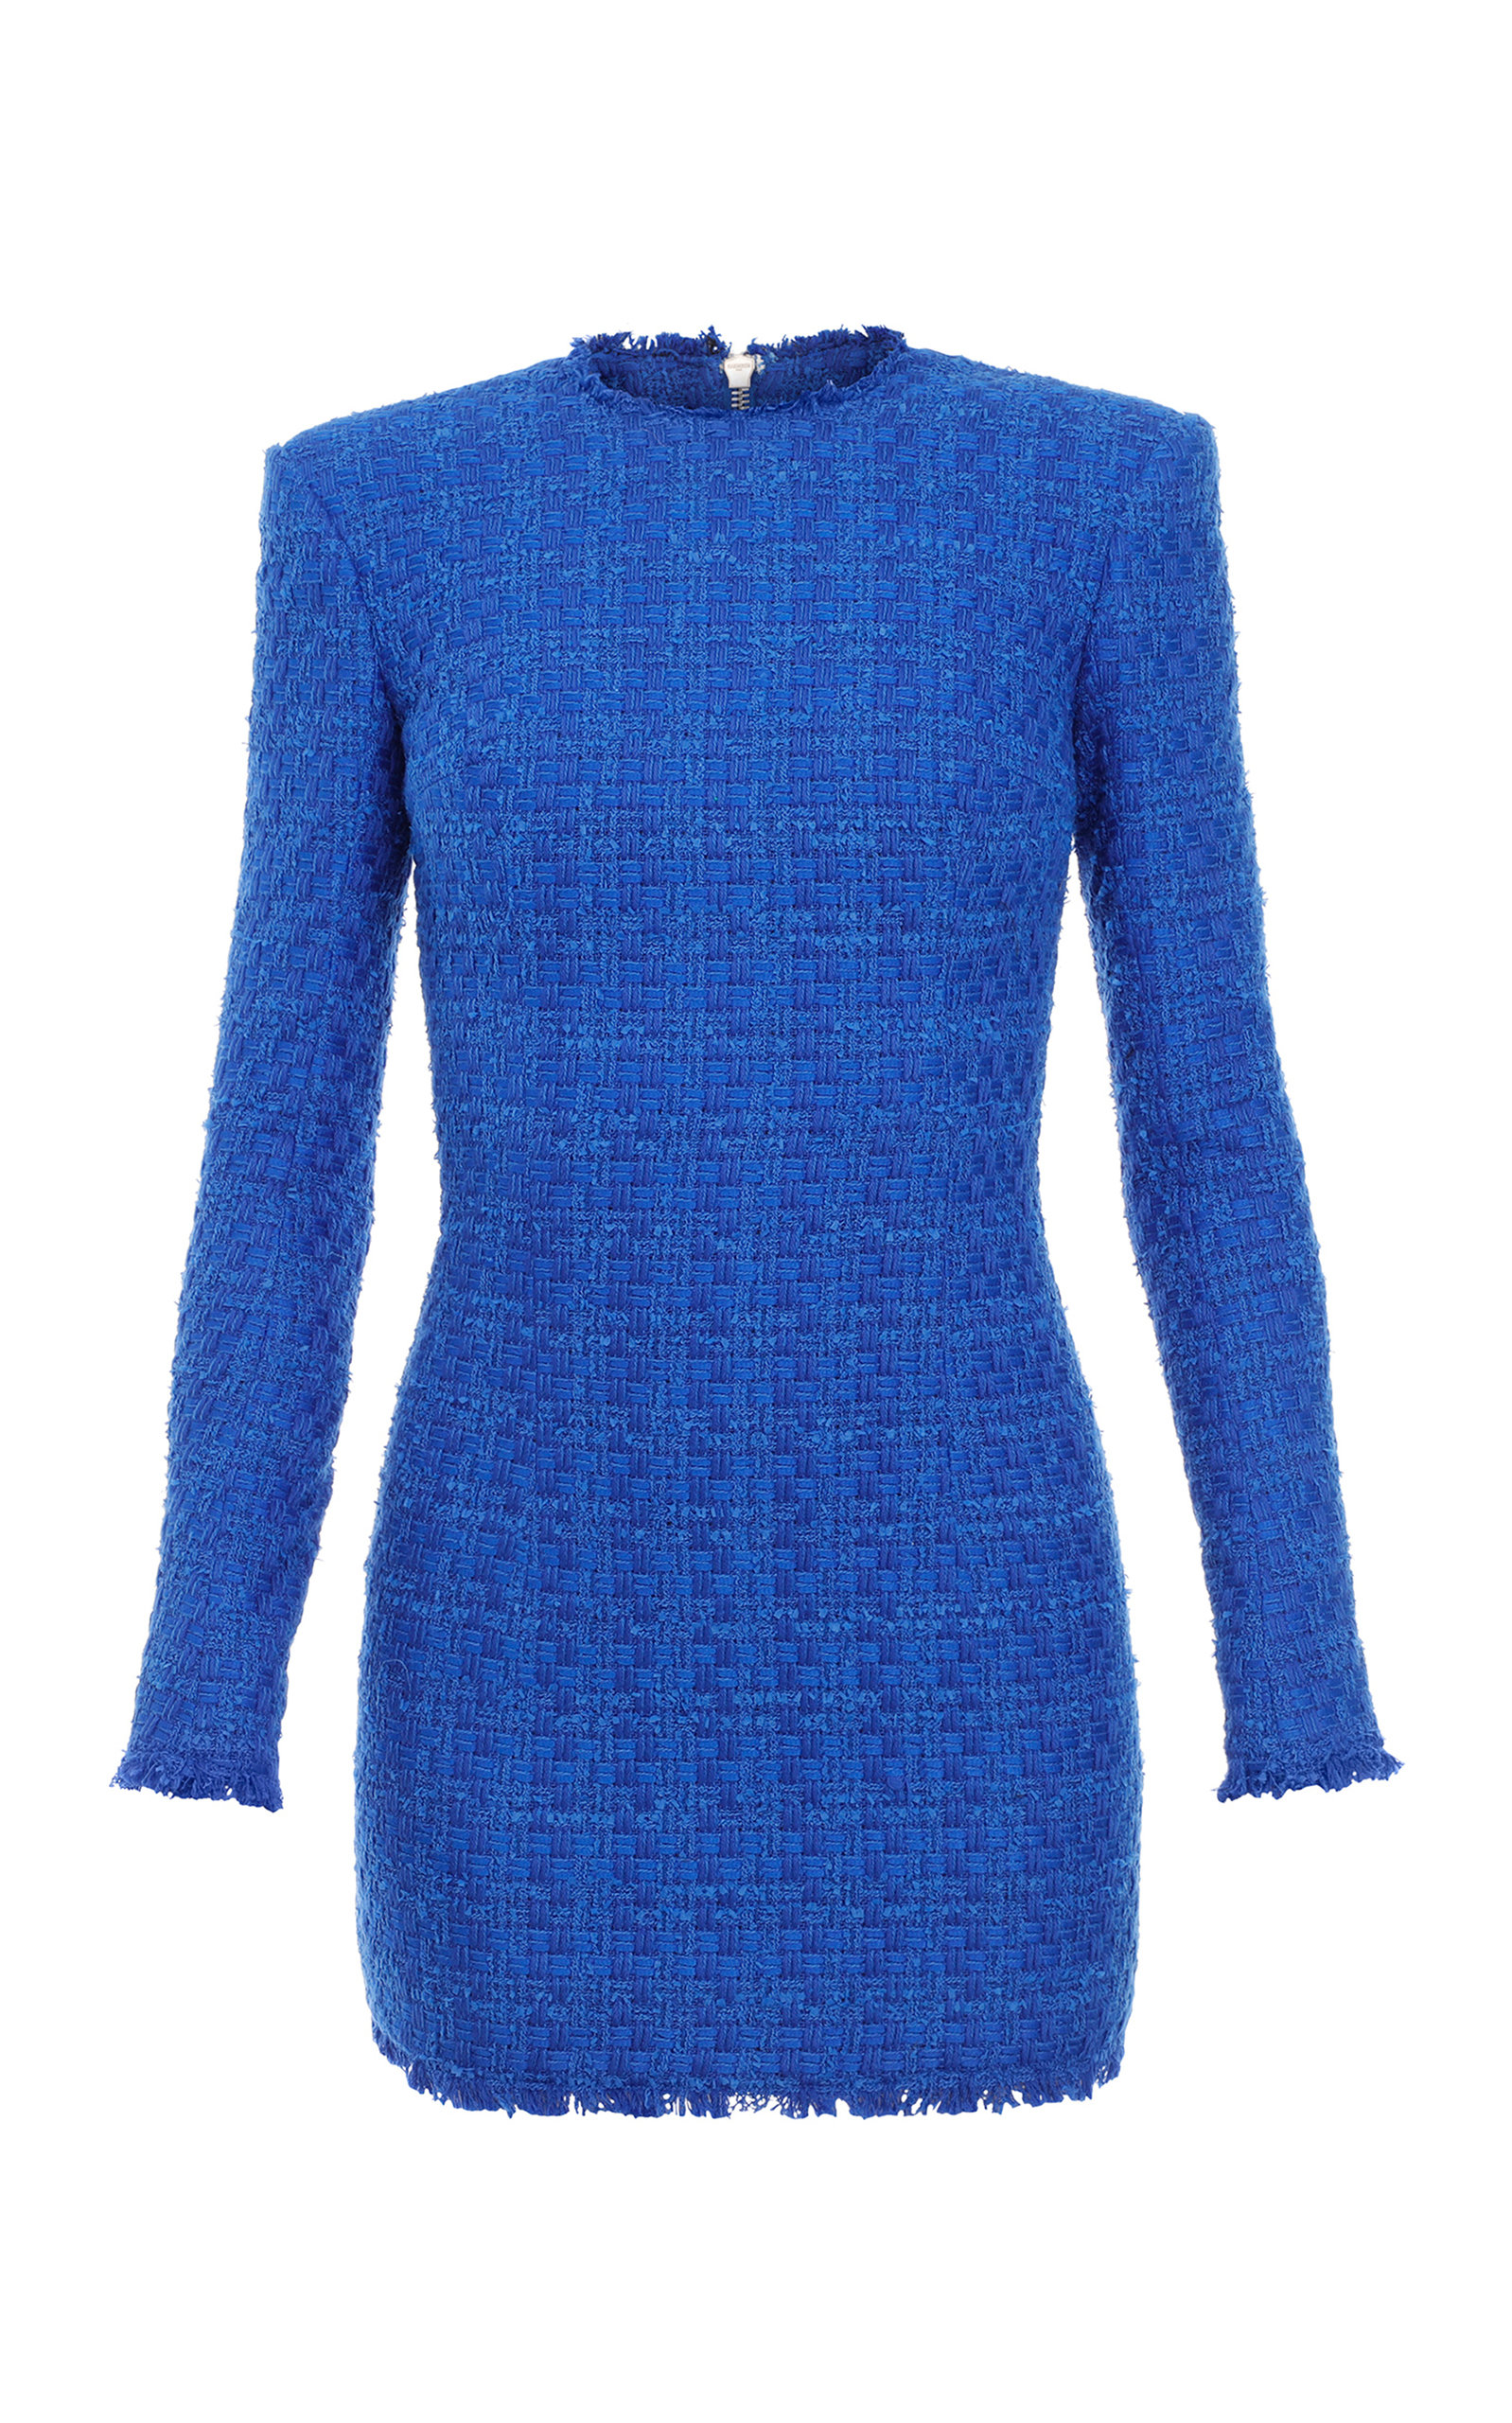 Buy Balmain Cotton-Blend Tweed Mini Dress online, shop Balmain at the best price